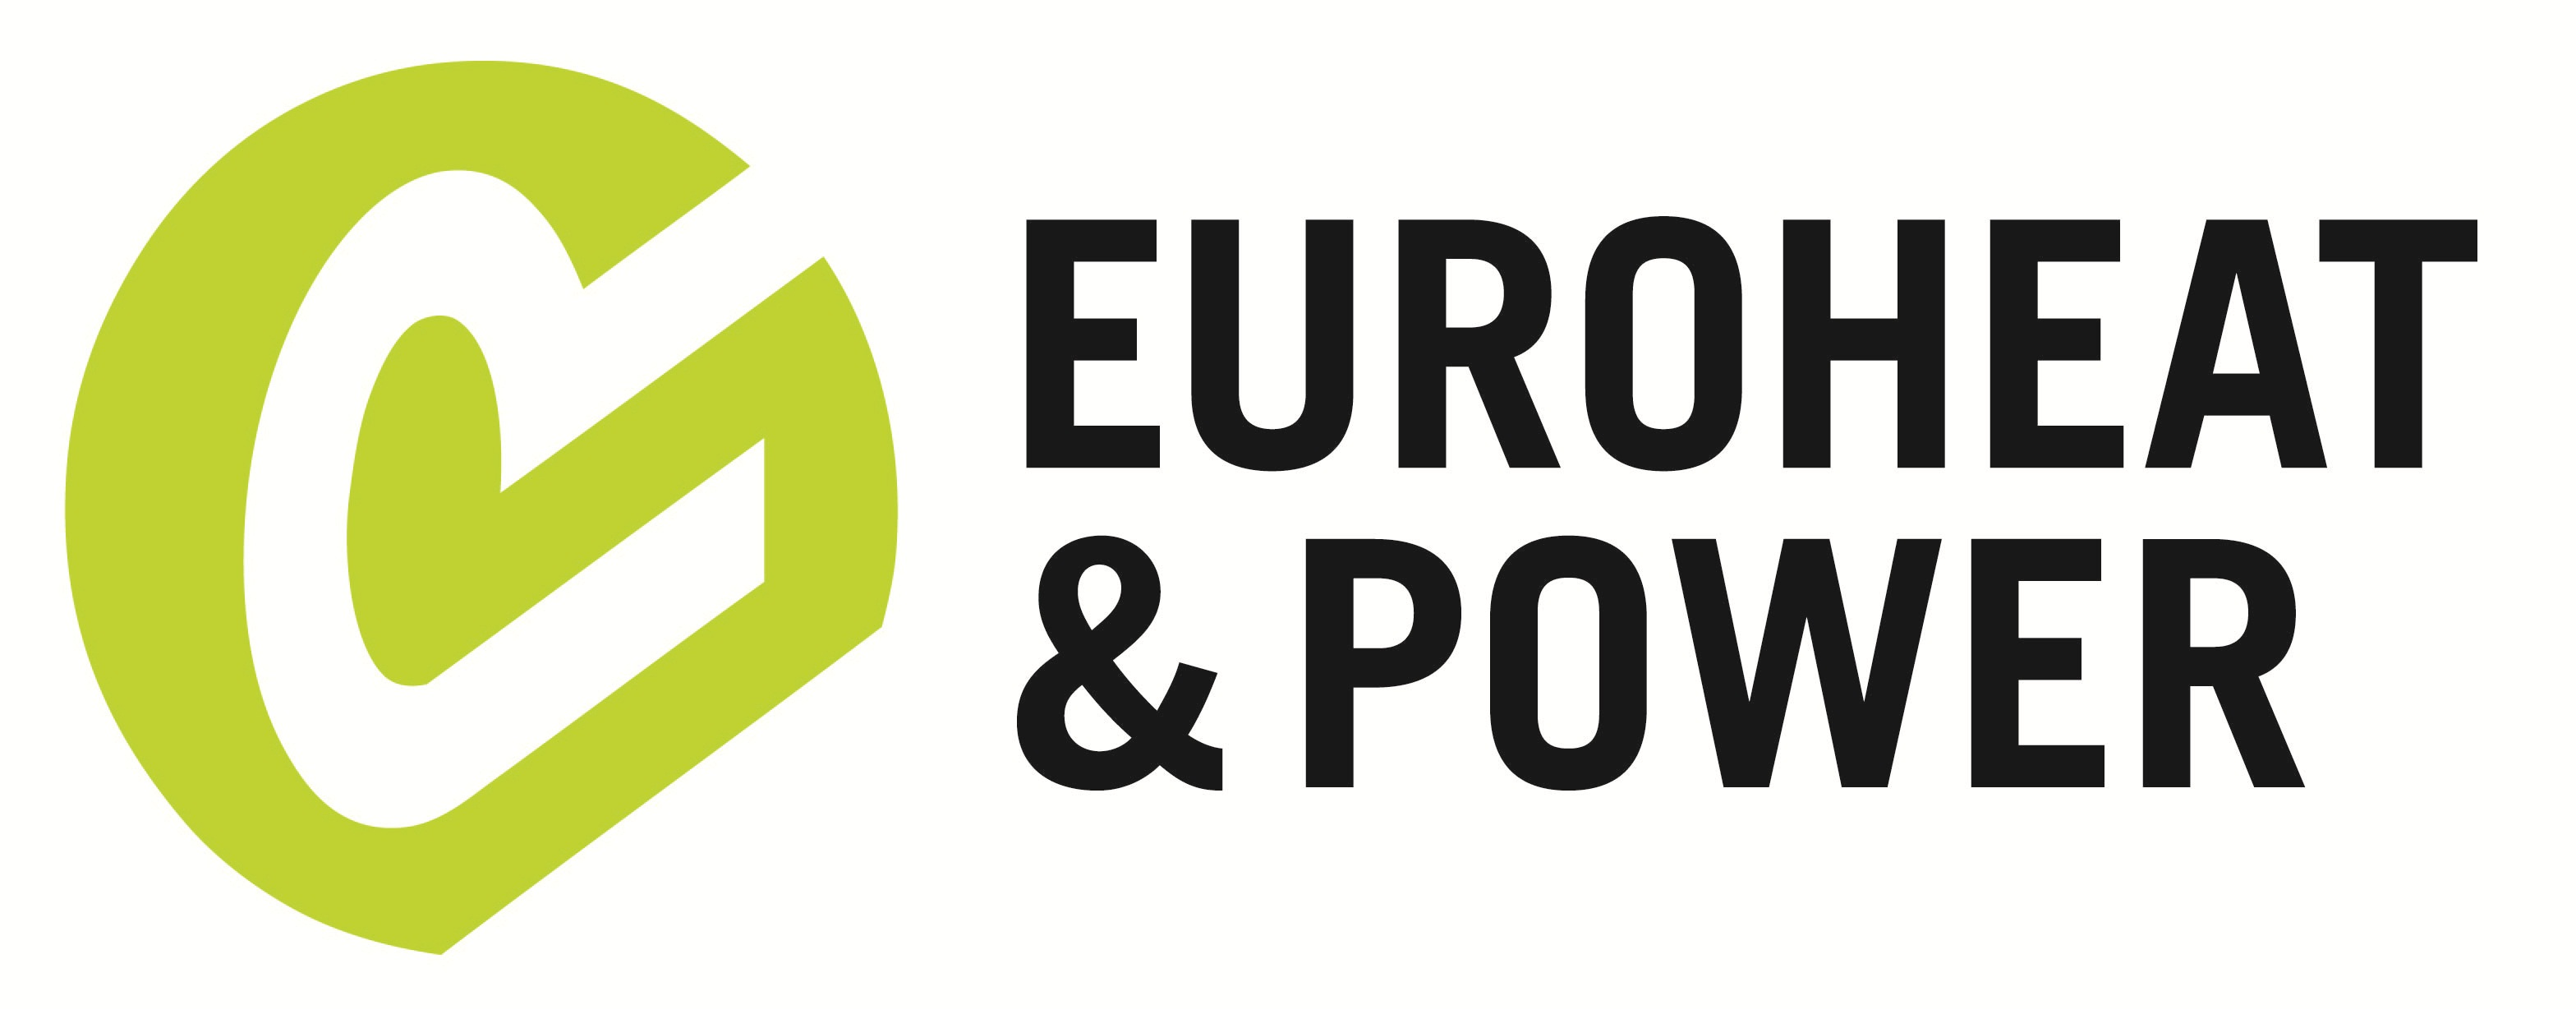 Euroheat & Power